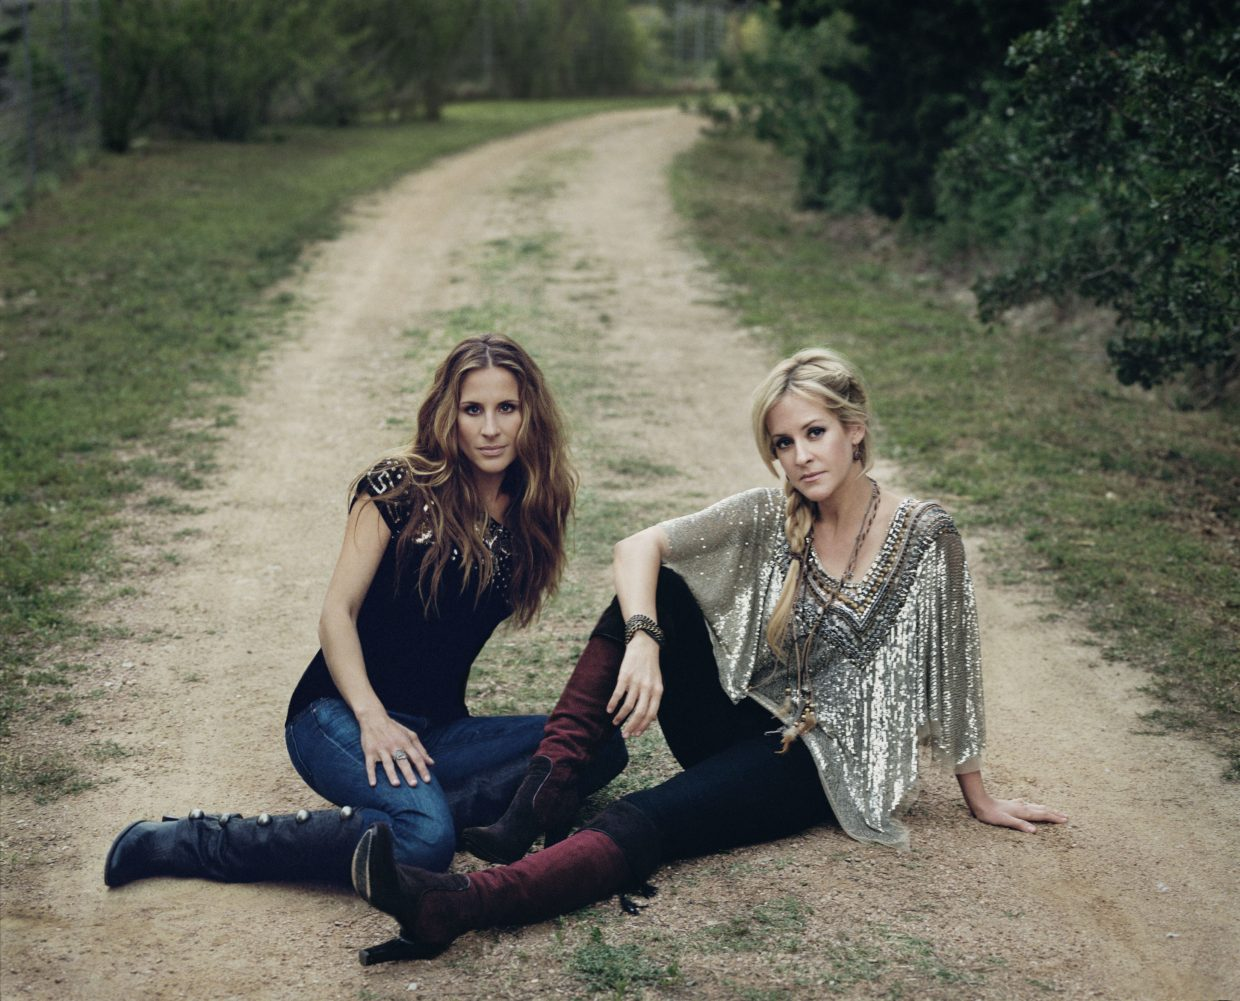 Court Yard Hounds play the Strings Music Festival on July 25. The band features Martie Maguire and Emily Robison, who along with with Natalie Maines, made up the Dixie Chicks.